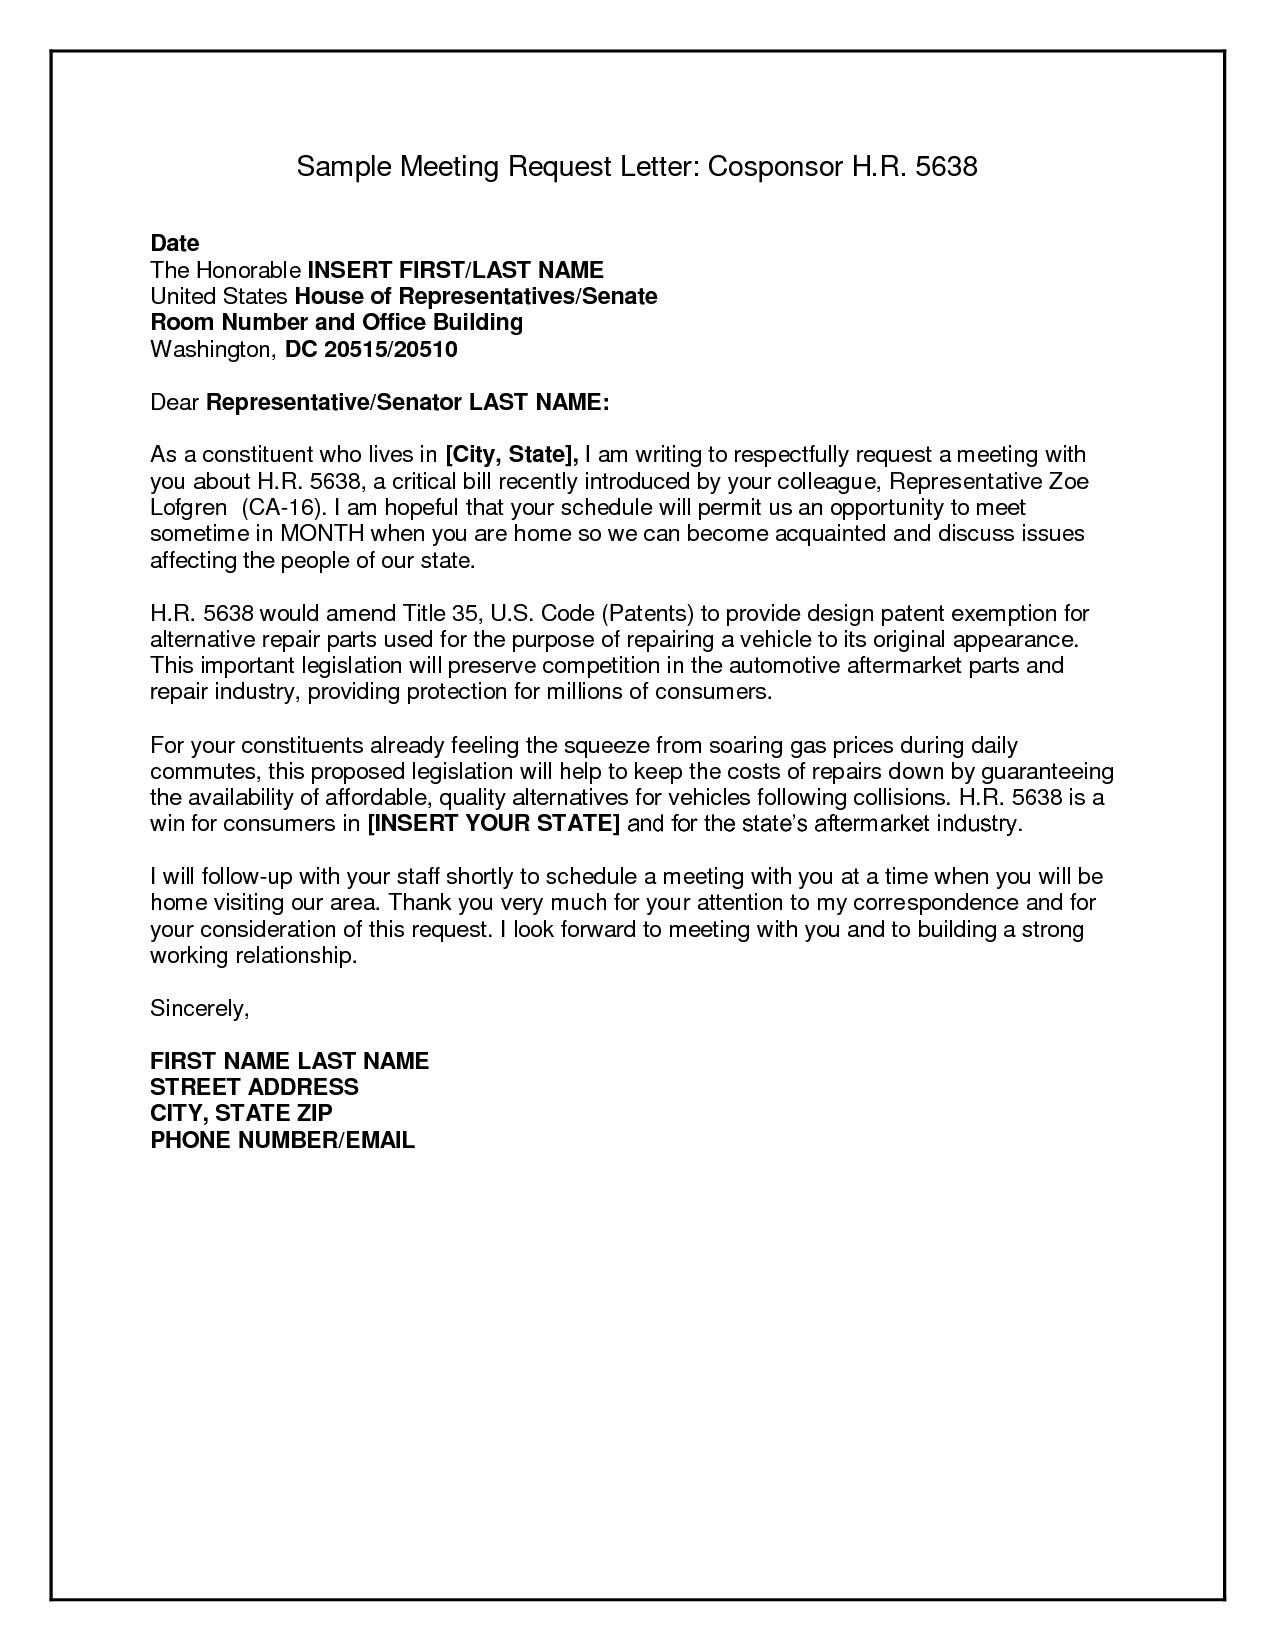 Solicitation Letter Template - Business Proposal Templates Refrence Business Sale Agreement New